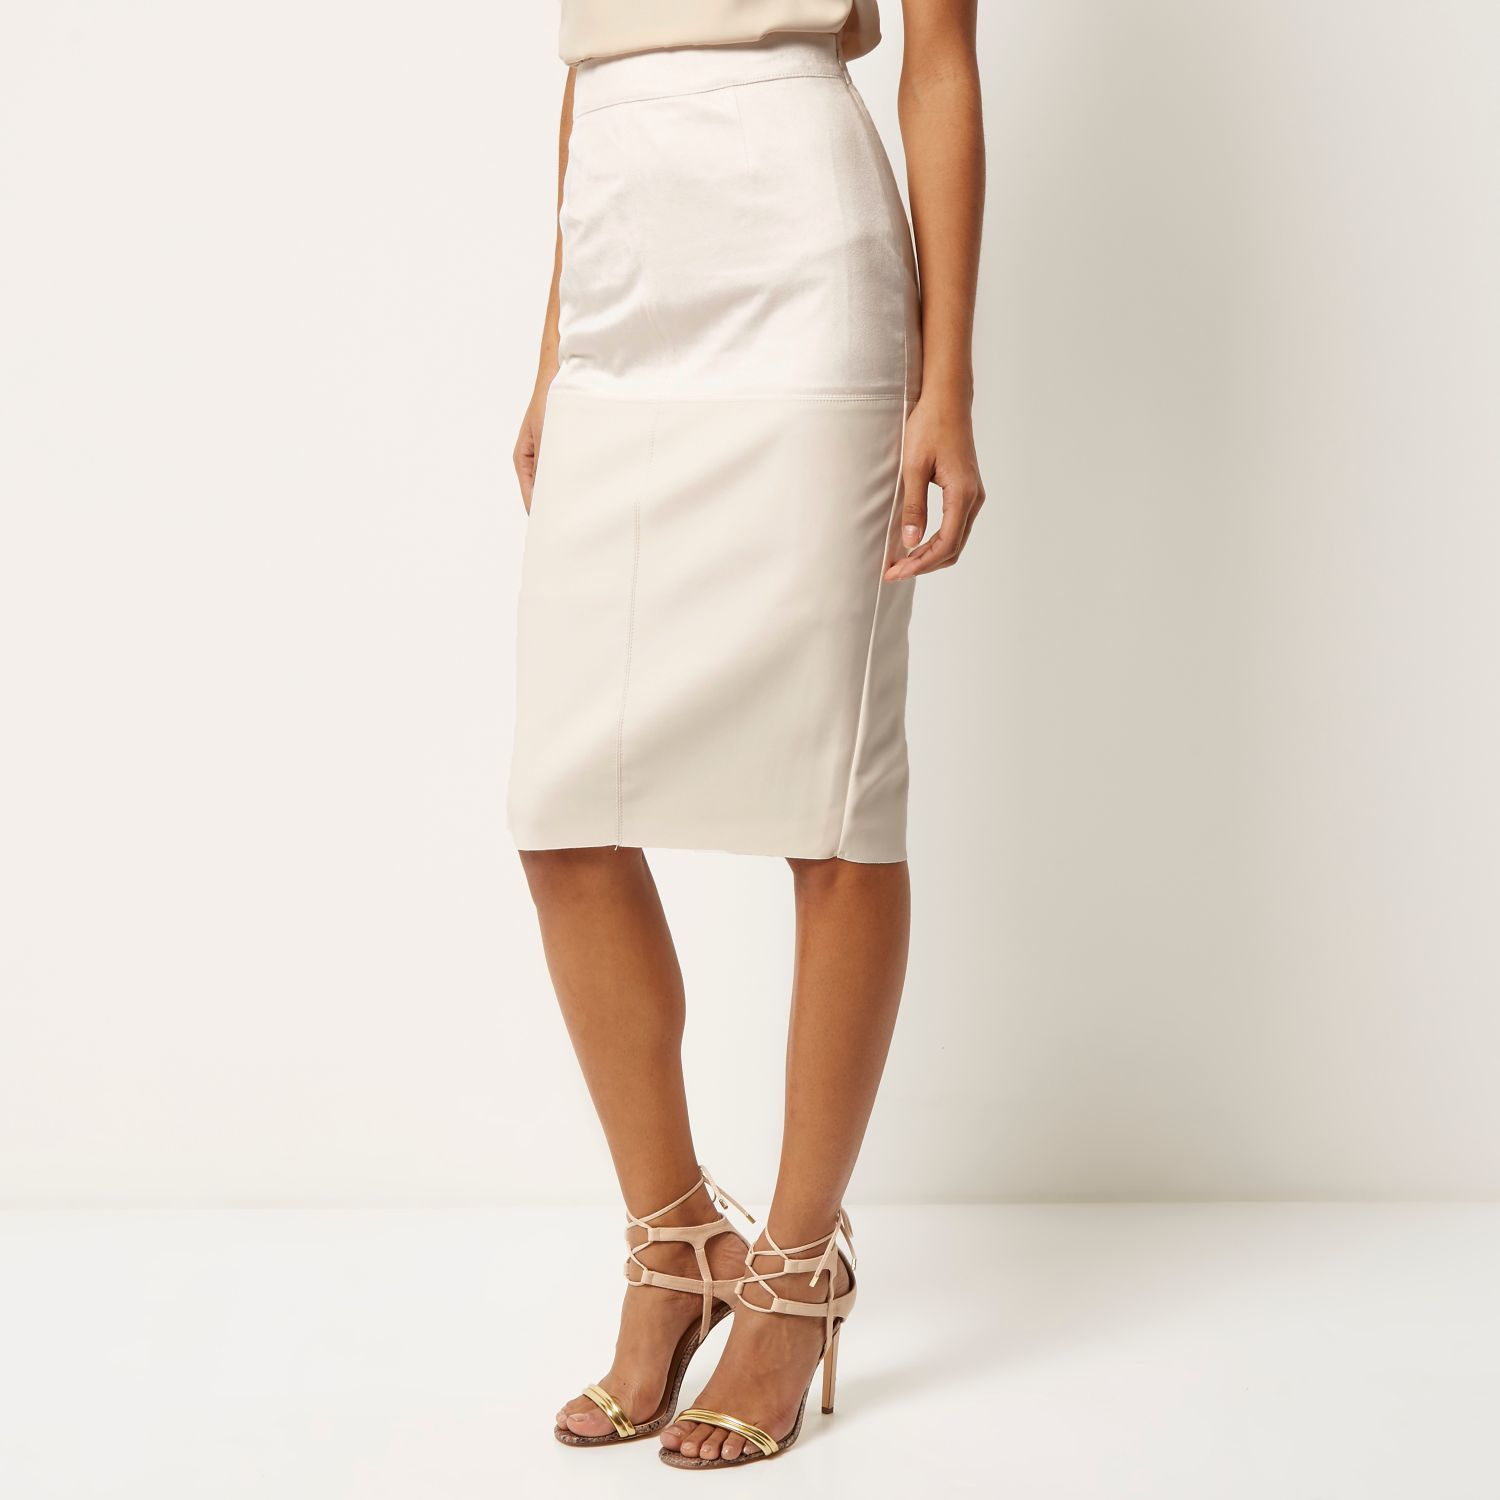 River island Cream Faux Suede Pencil Skirt in Natural | Lyst